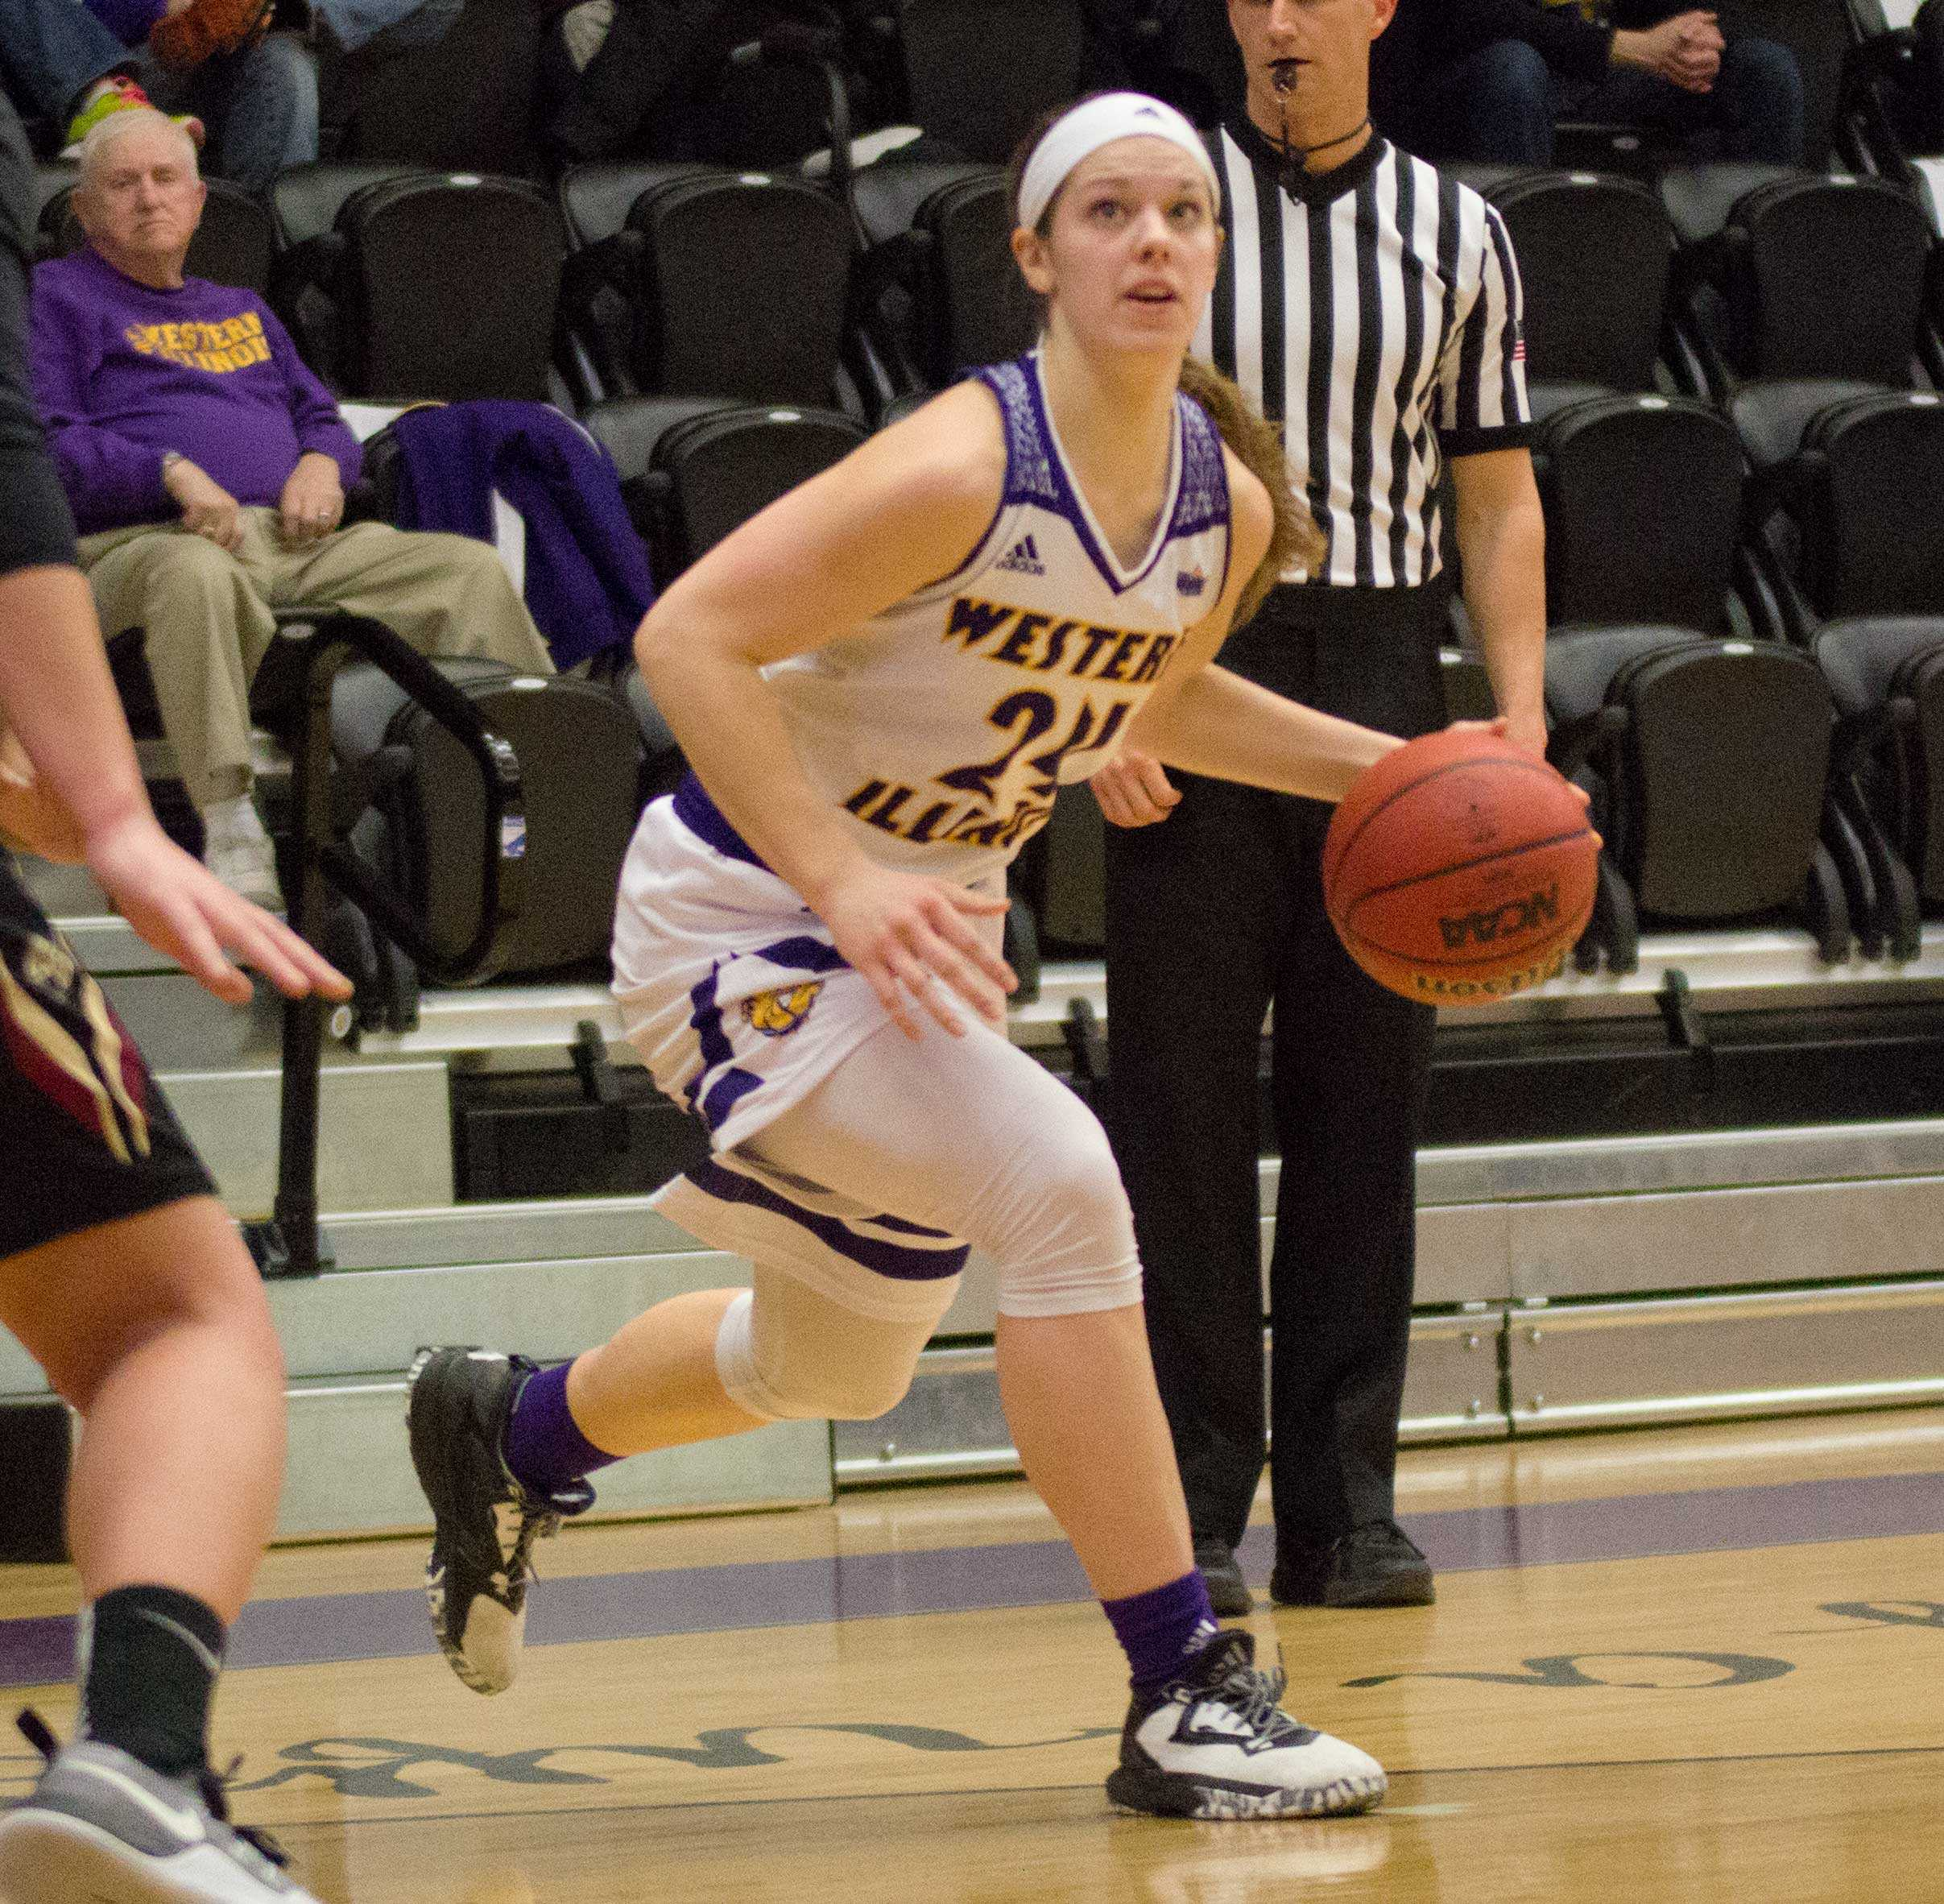 Sophomore Taylor Higginbotham goes 6 for 17 from the field in 35 minutes during Saturday's game.